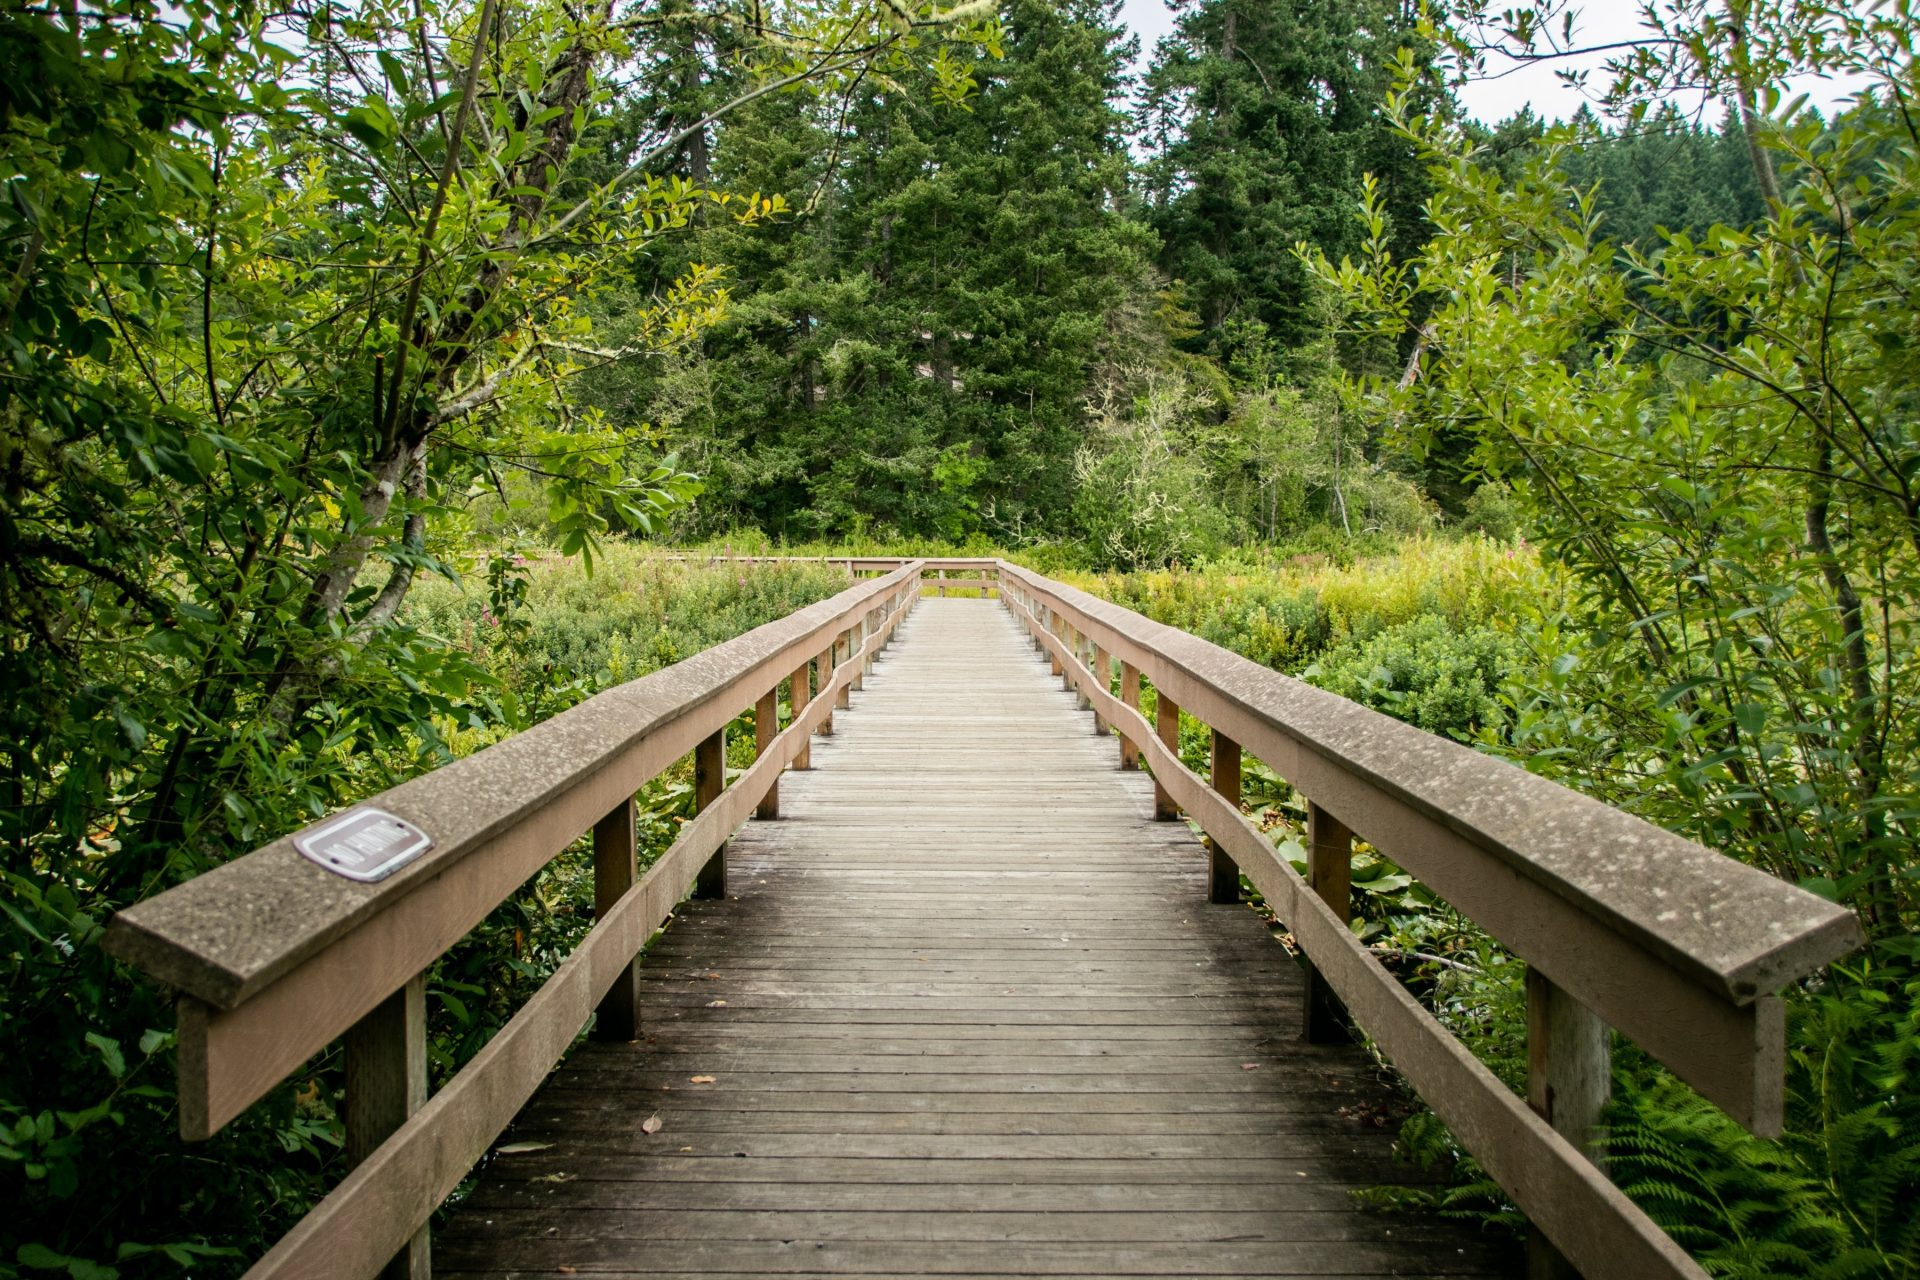 Wooden Boardwalk With Railings Between Plants And Trees